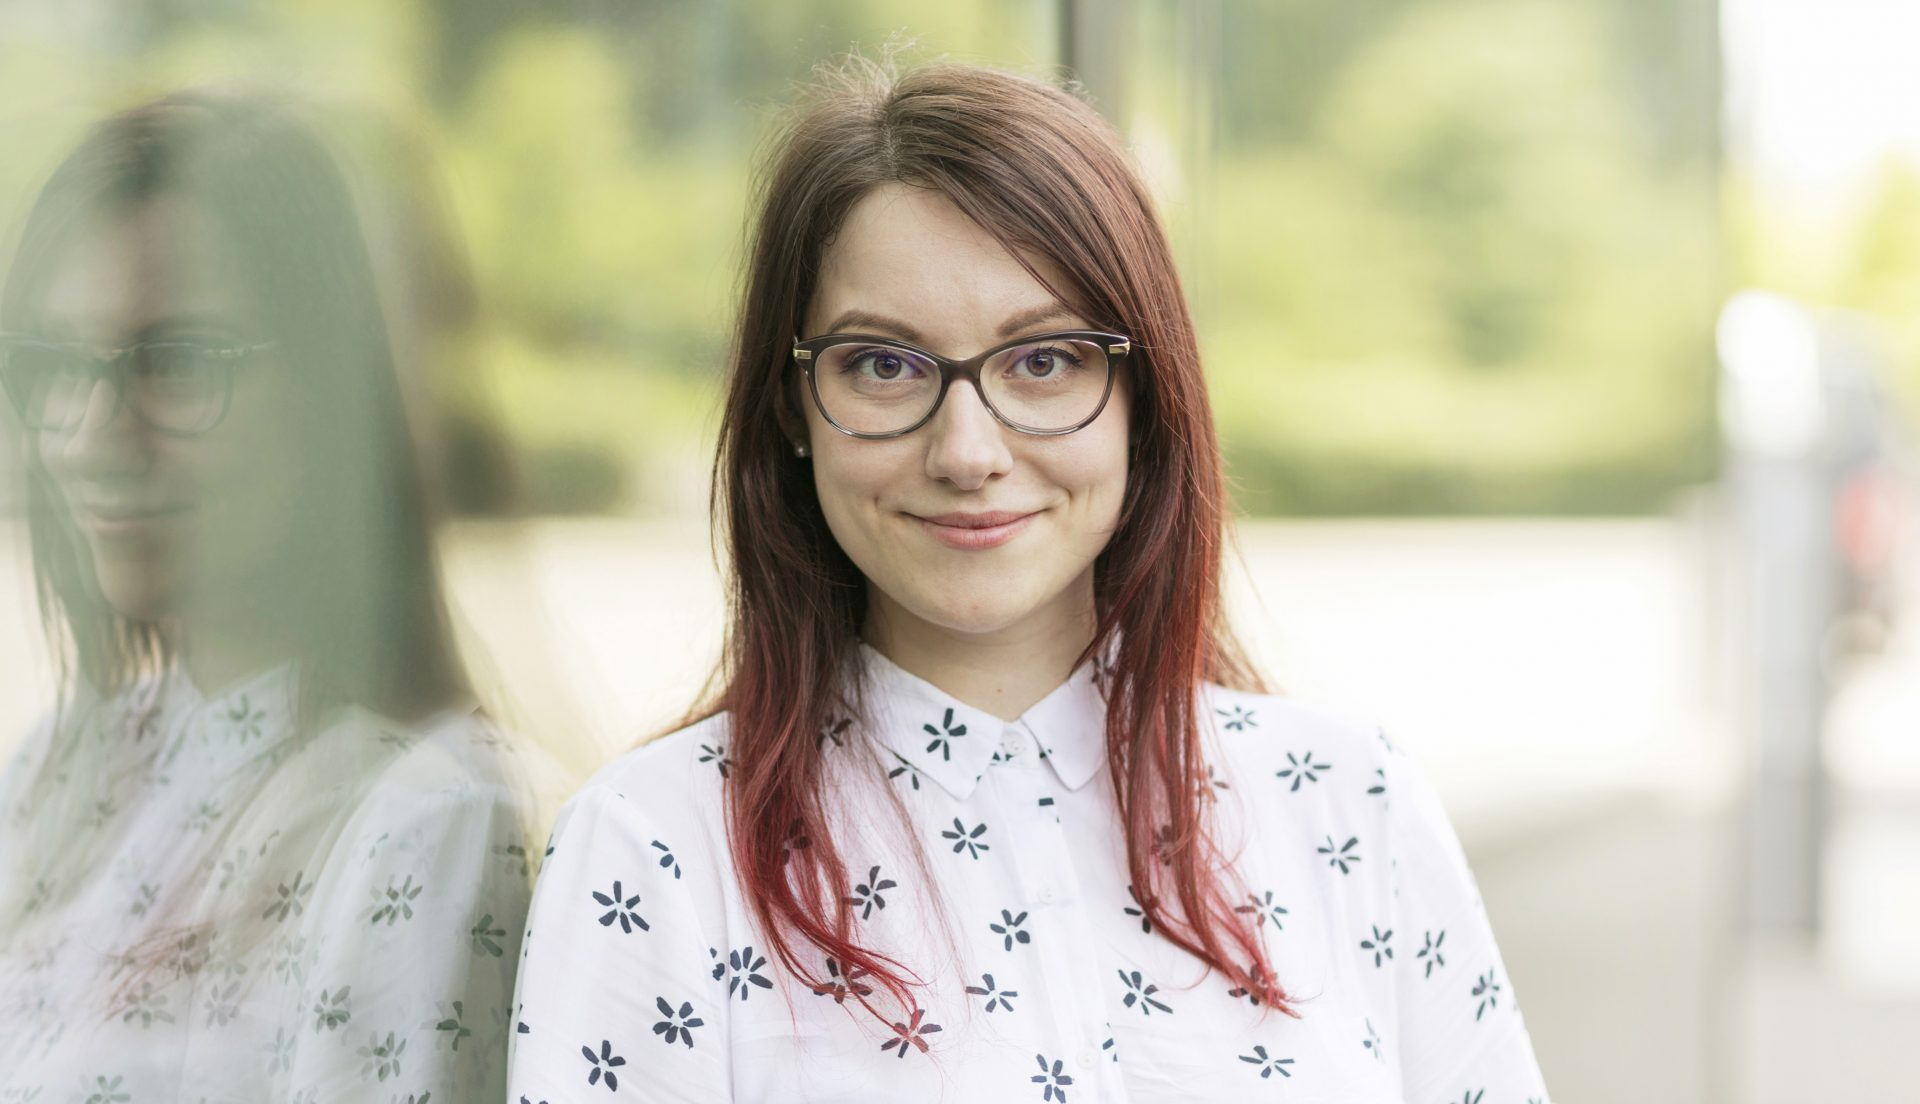 How to be a forensic scientist [Interview with Martina Ribar Hestericová]